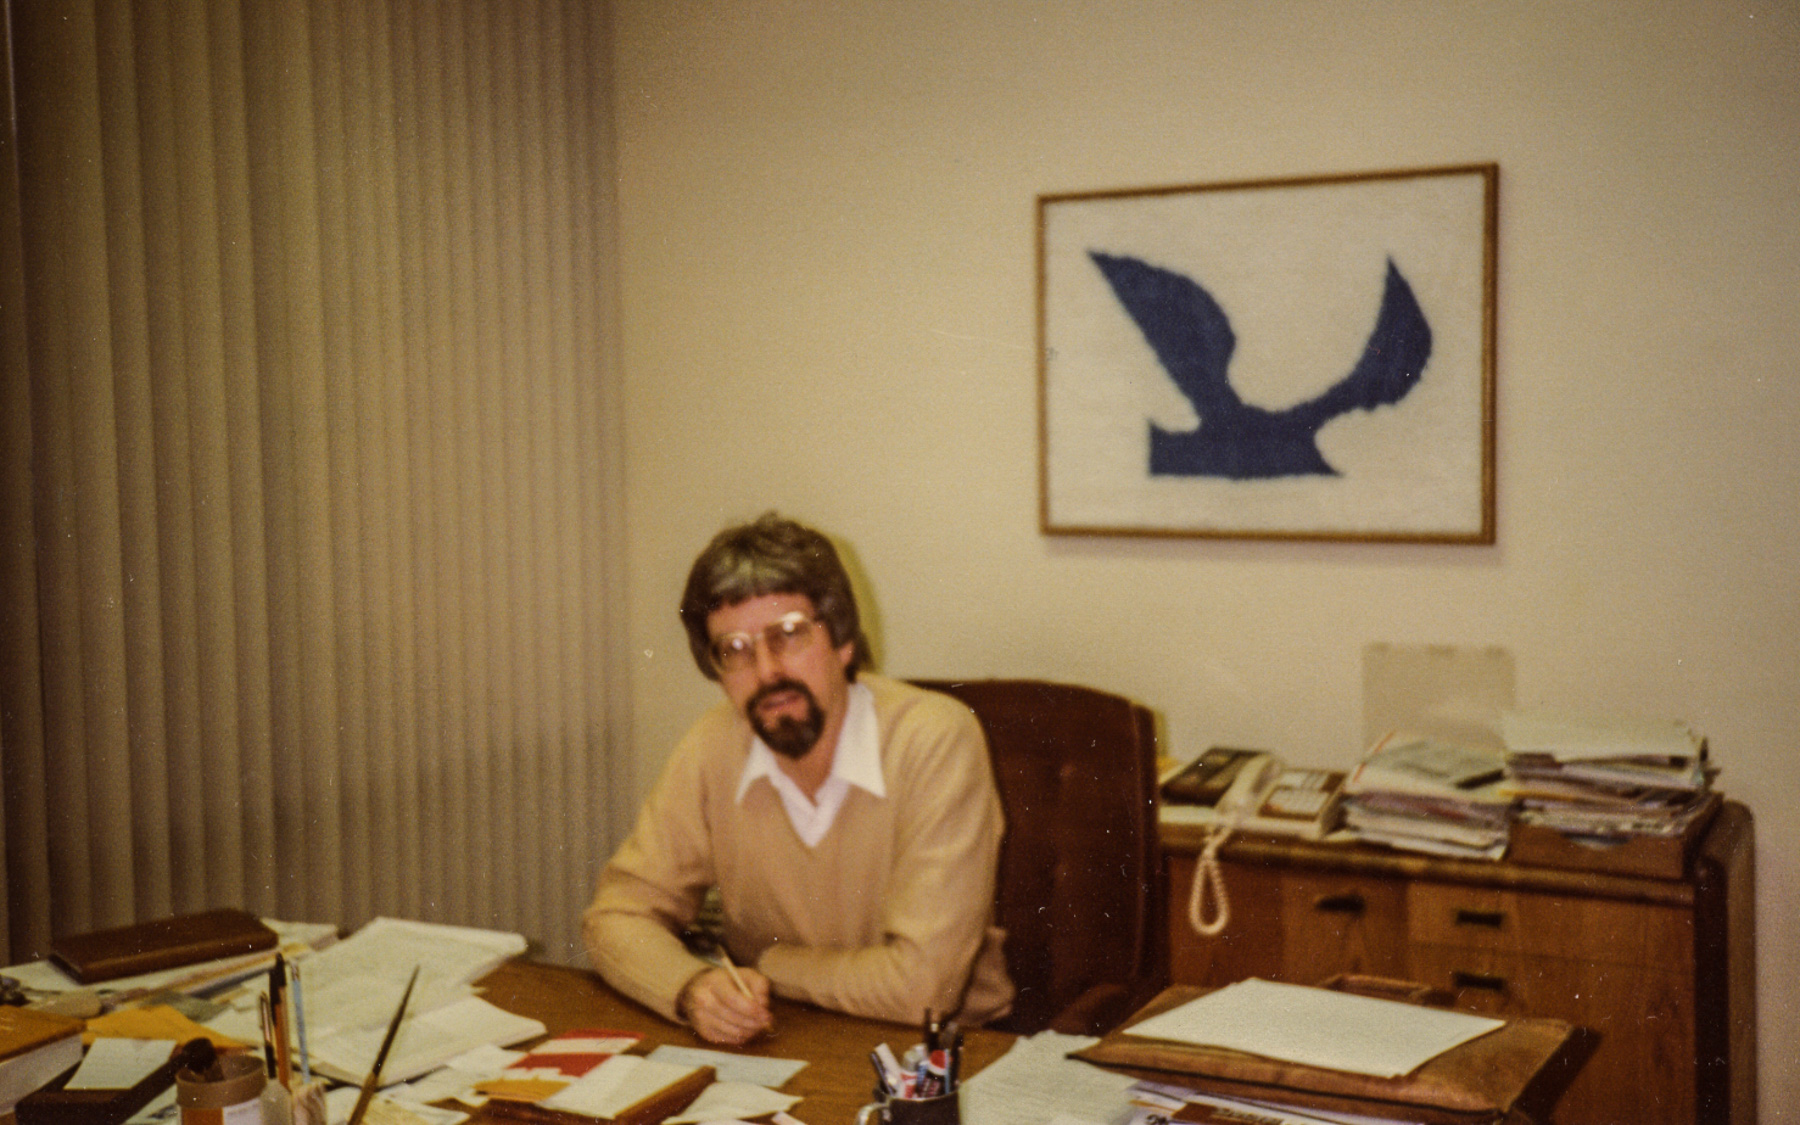 Dr. Wentz in his office at Gull Laboratories